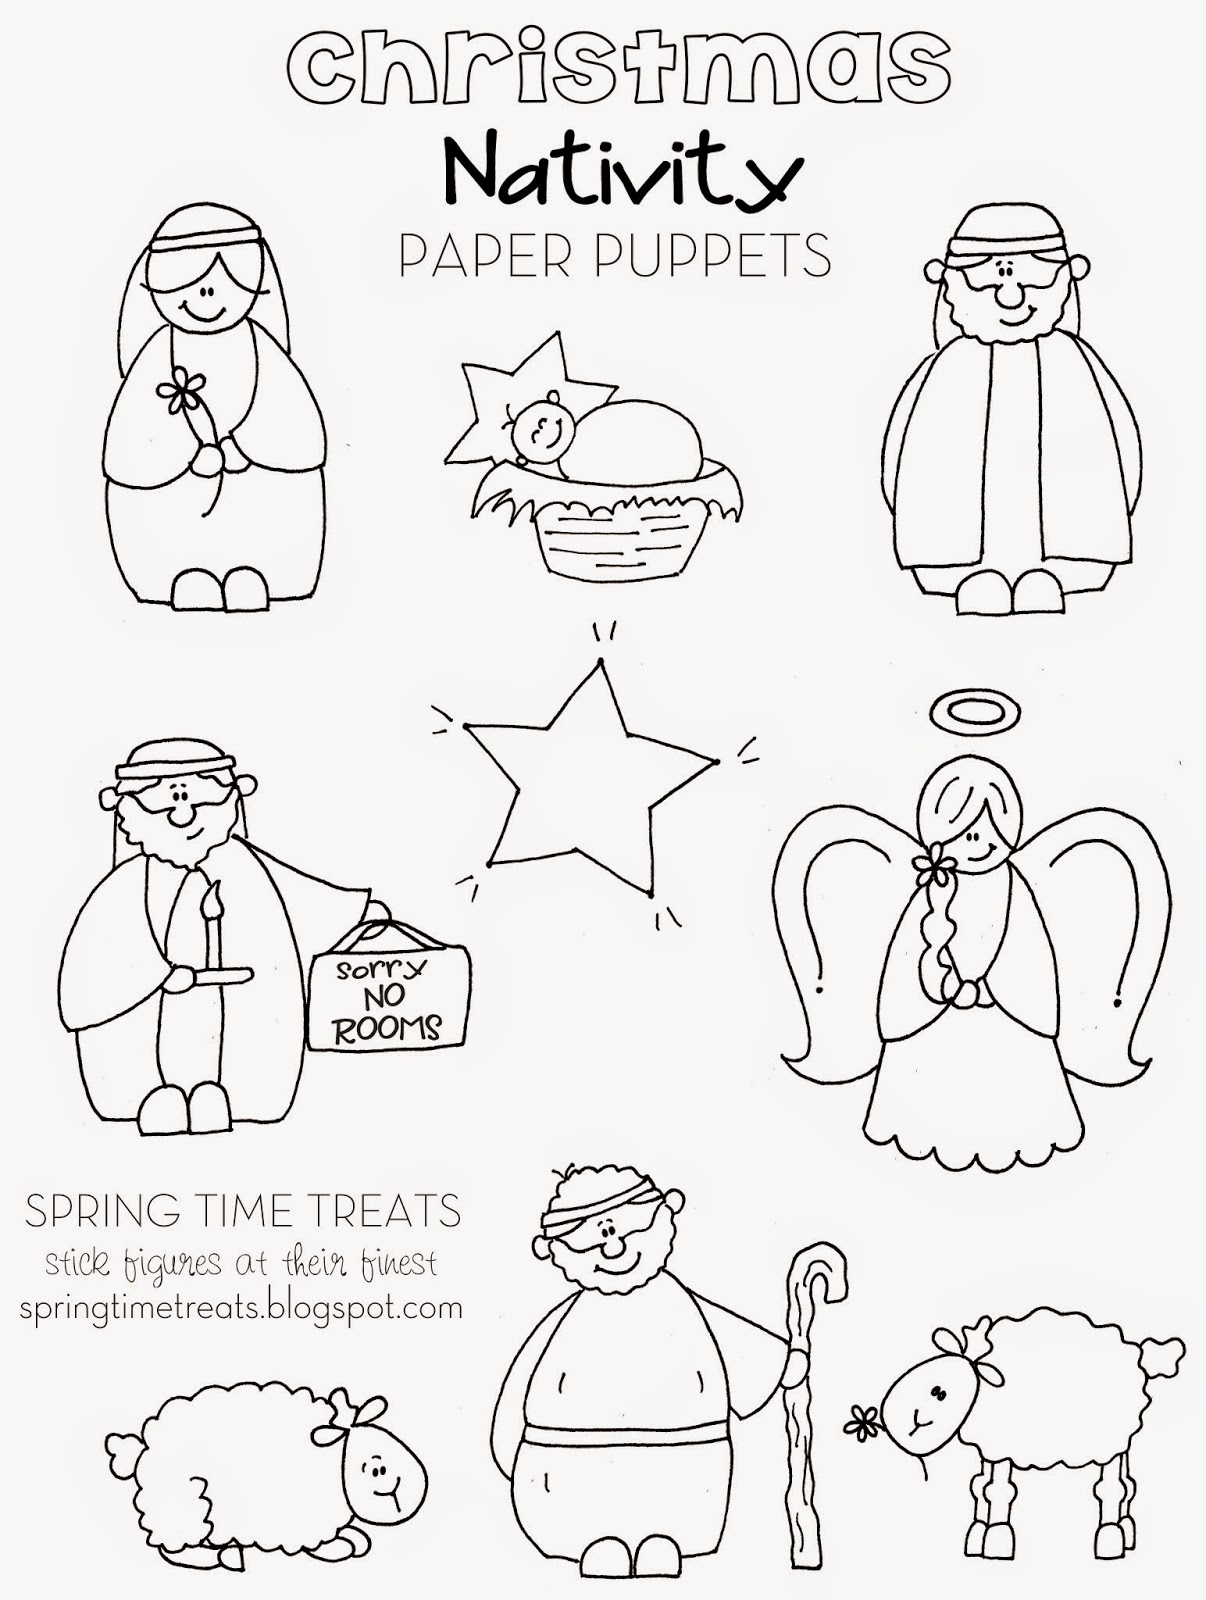 Spring Time Treats Nativity Paper Puppets